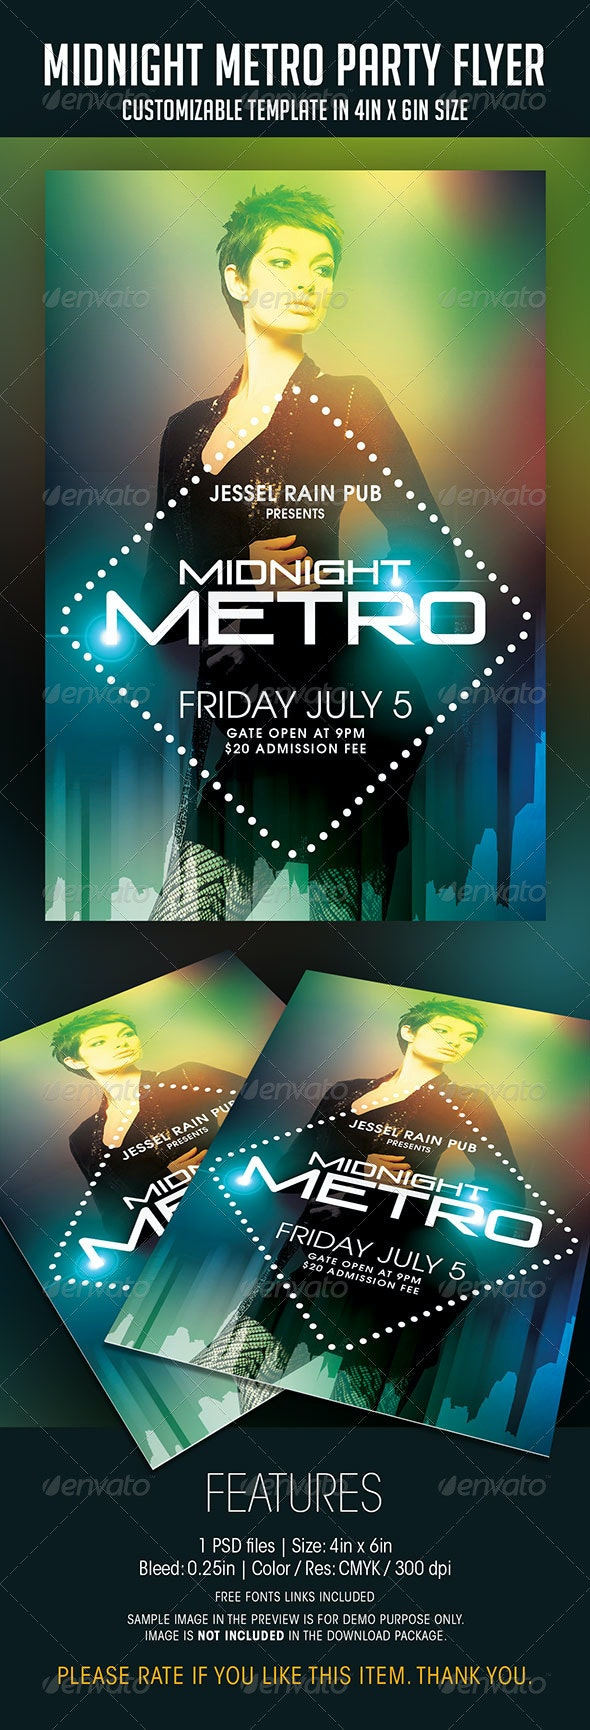 Midnight Metro Party Flyer - Clubs & Parties Events